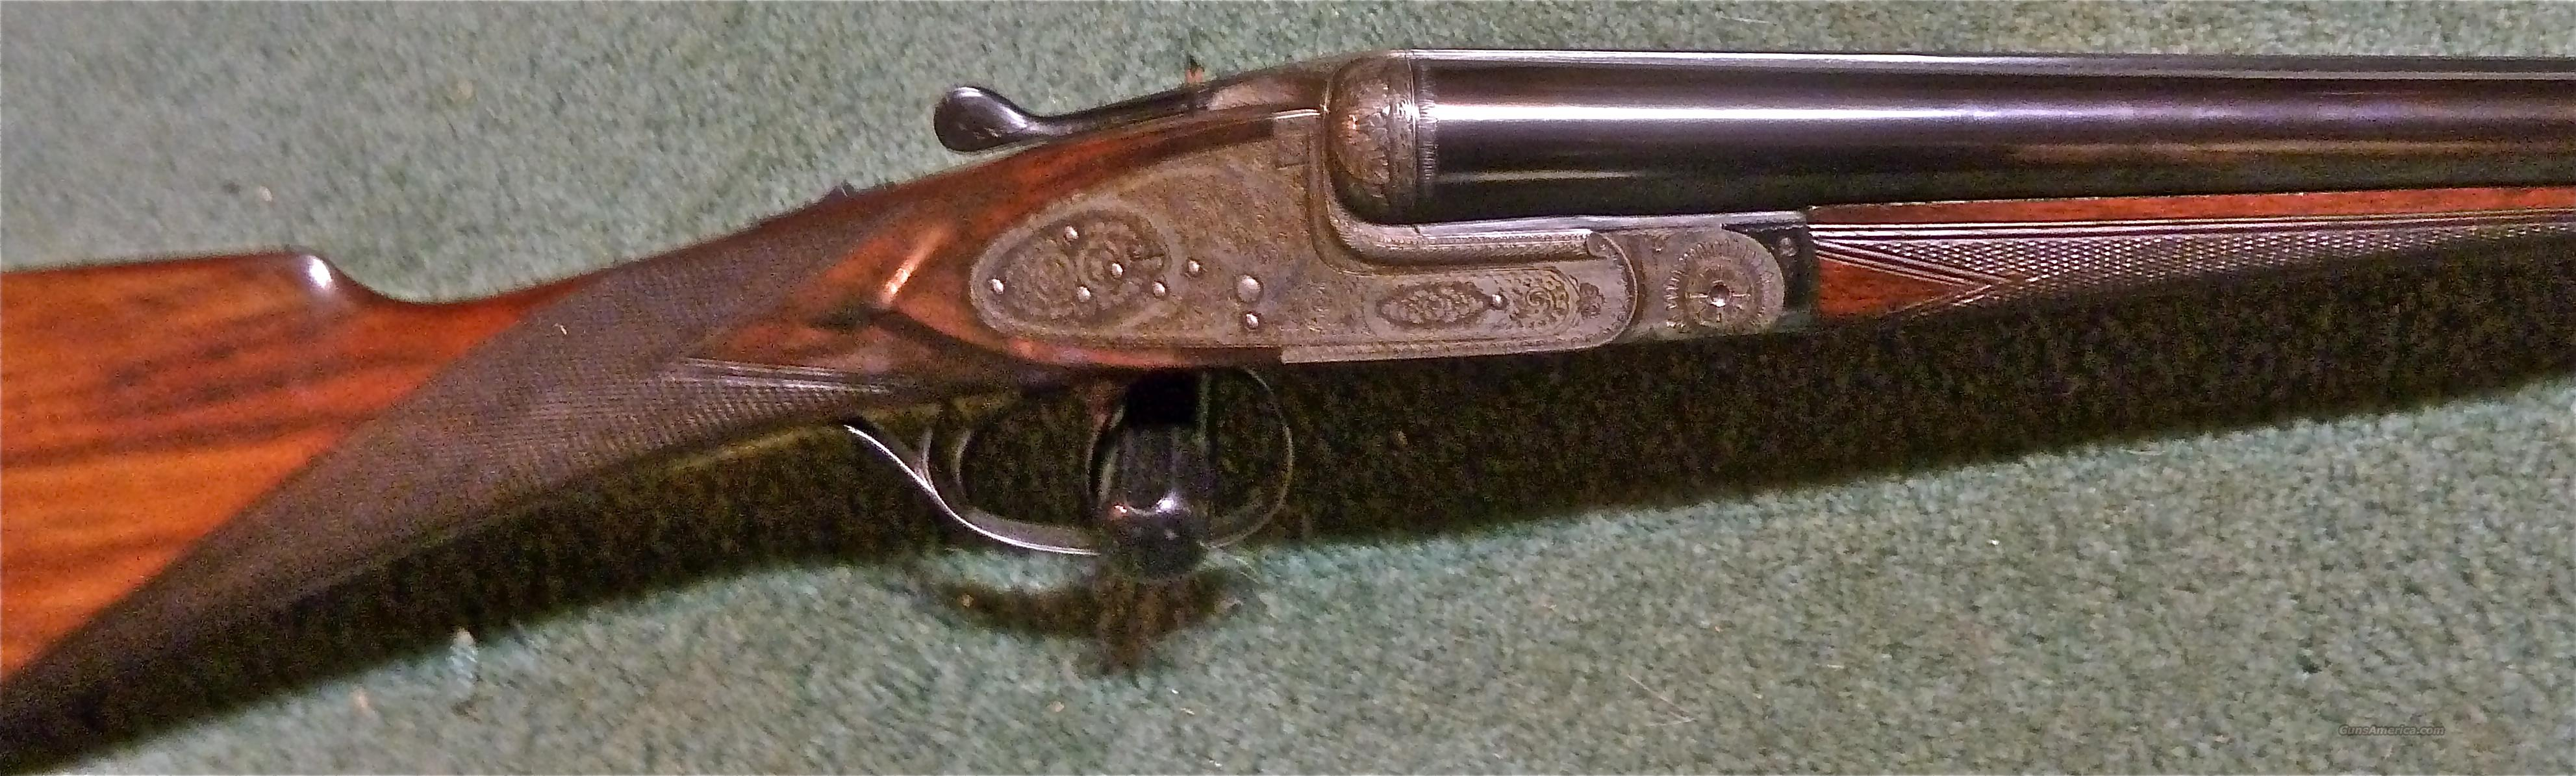 Beretta sxs model 436 12 ga.  Guns > Shotguns > Beretta Shotguns > SxS